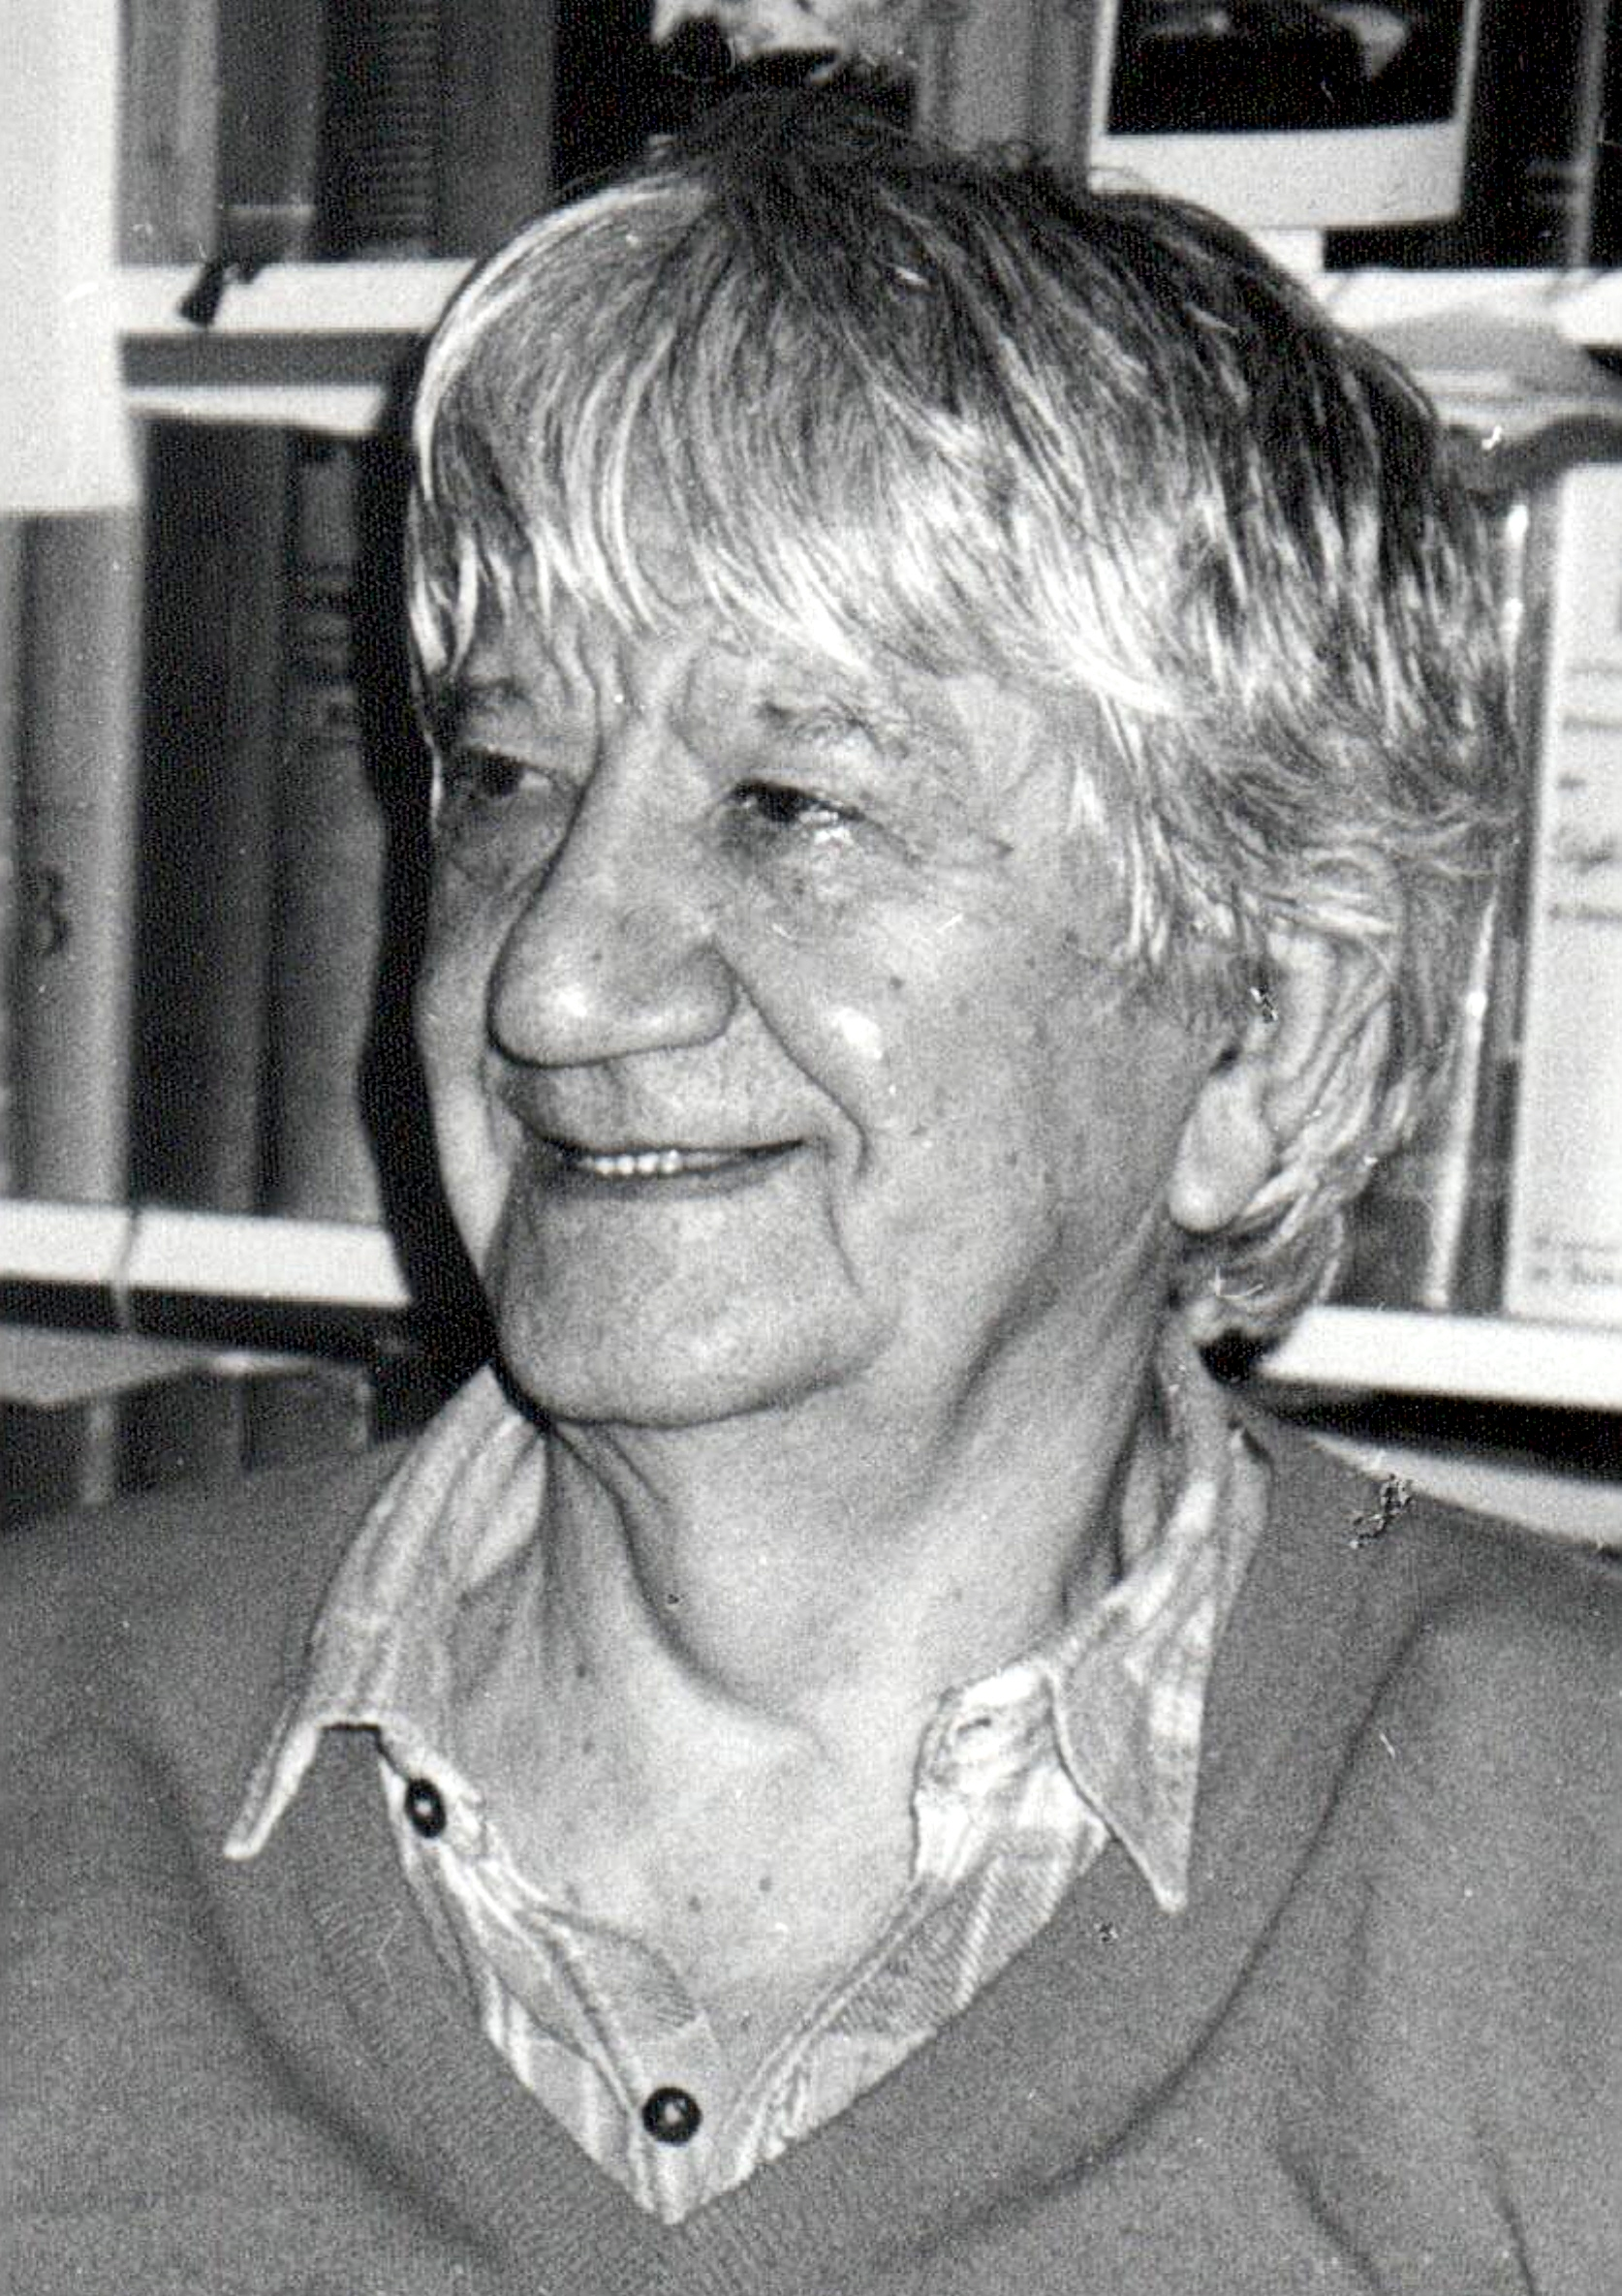 Jan Vladislav in 2000, Paris